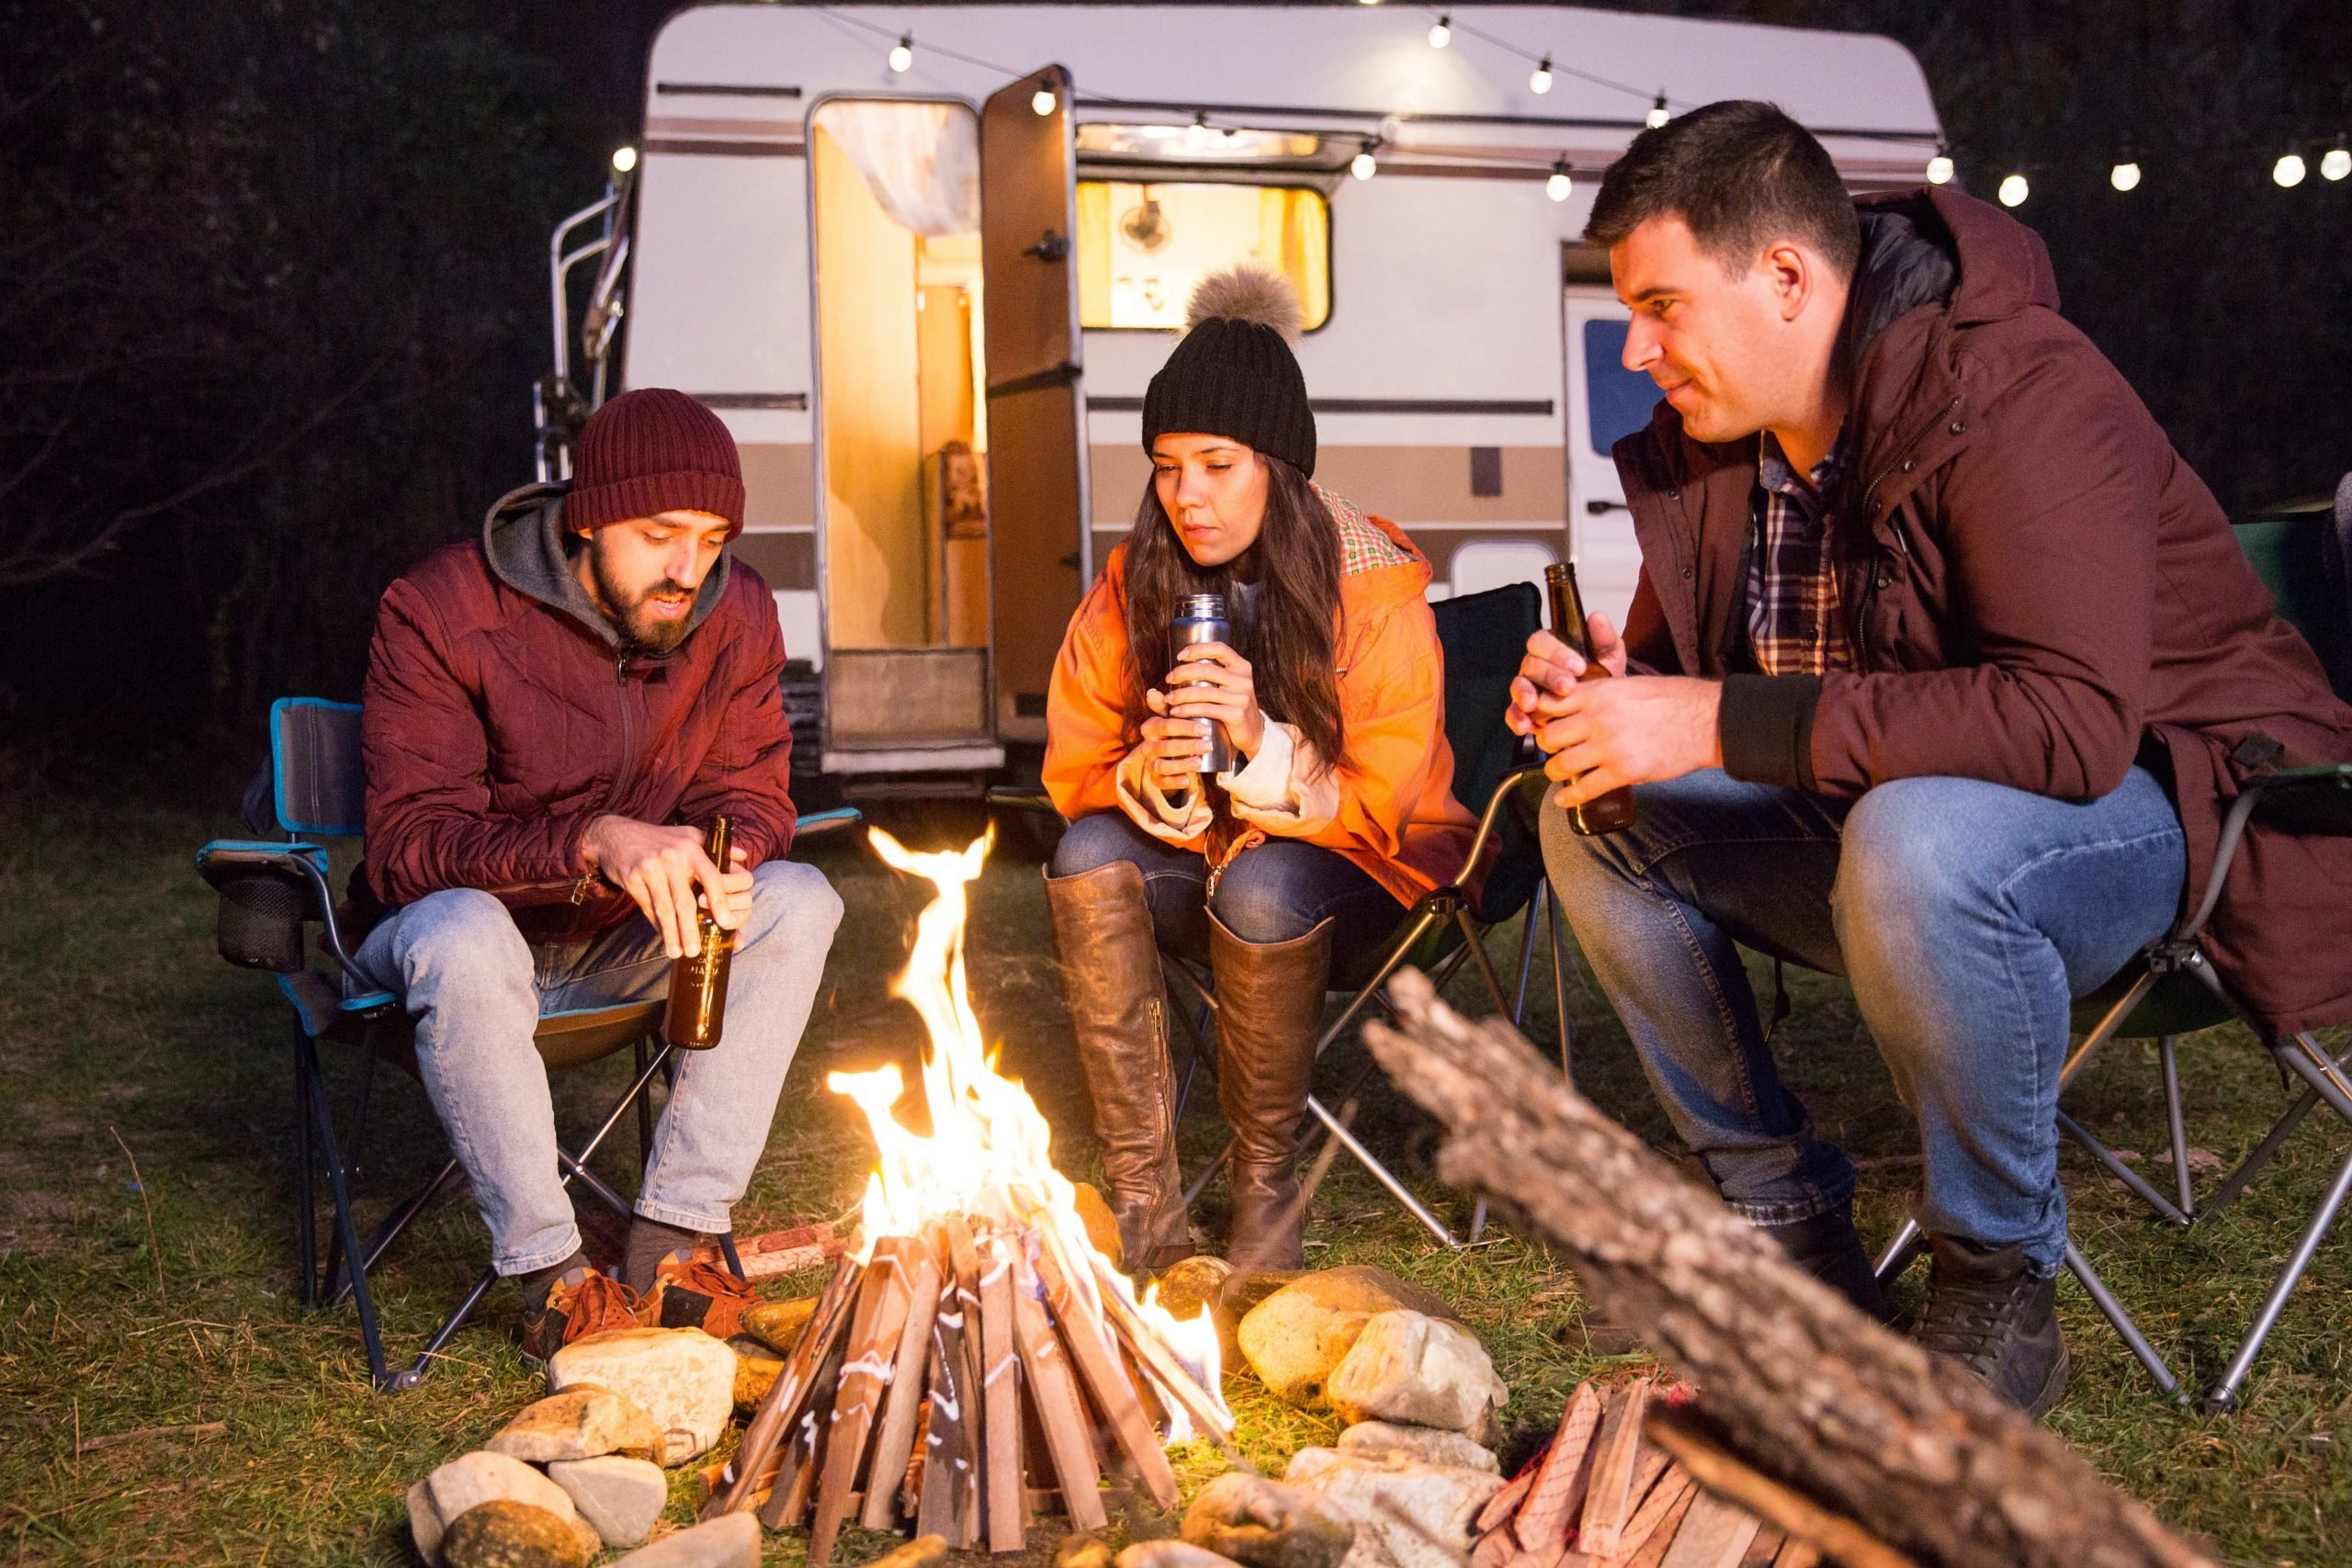 Close friends sitting together on camping chairs around camp fire in the mountains. Retro camper van.